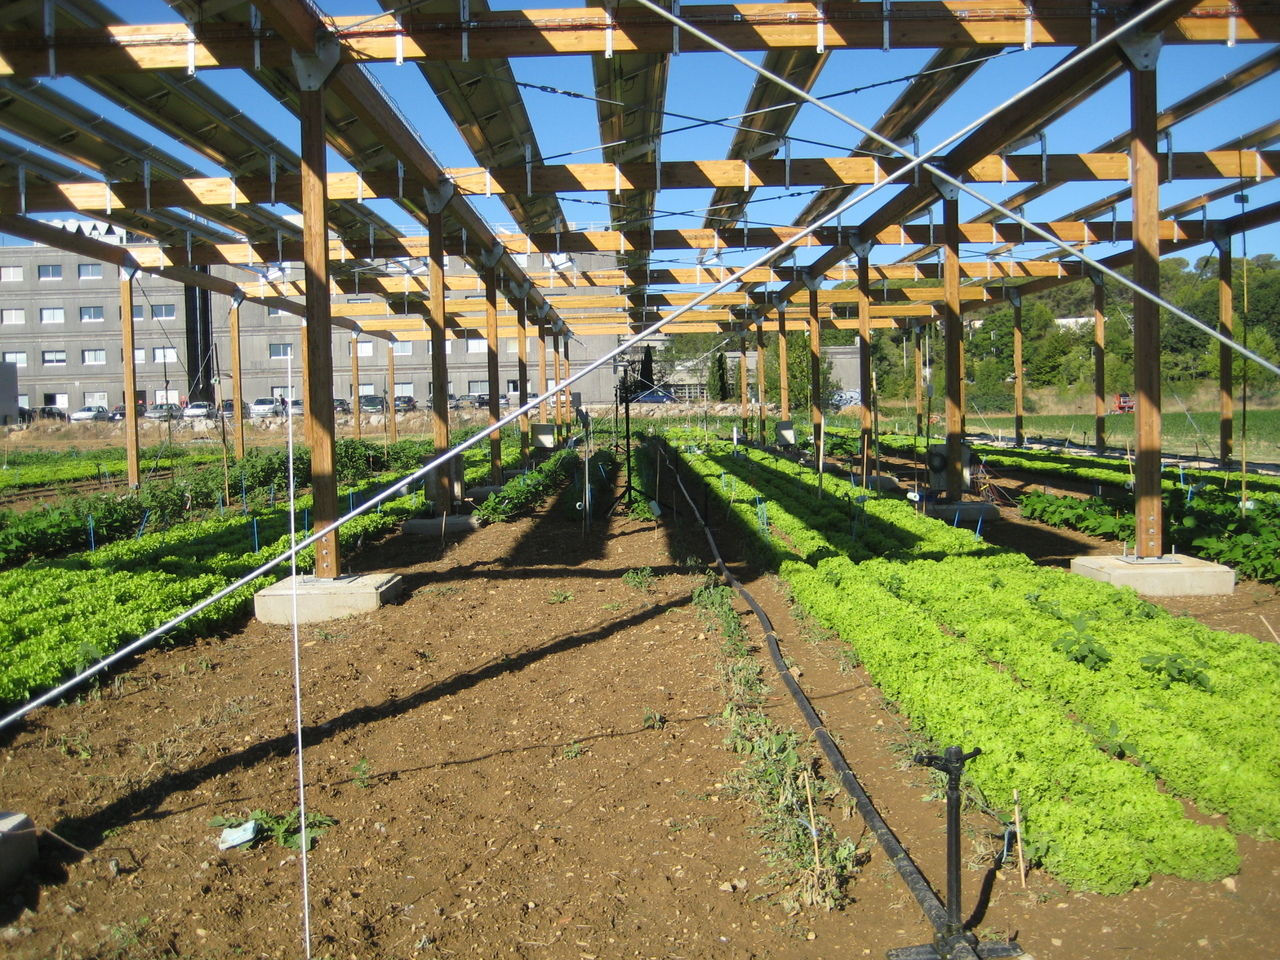 Agrivoltaics : a win-win system to combine food and energy production?